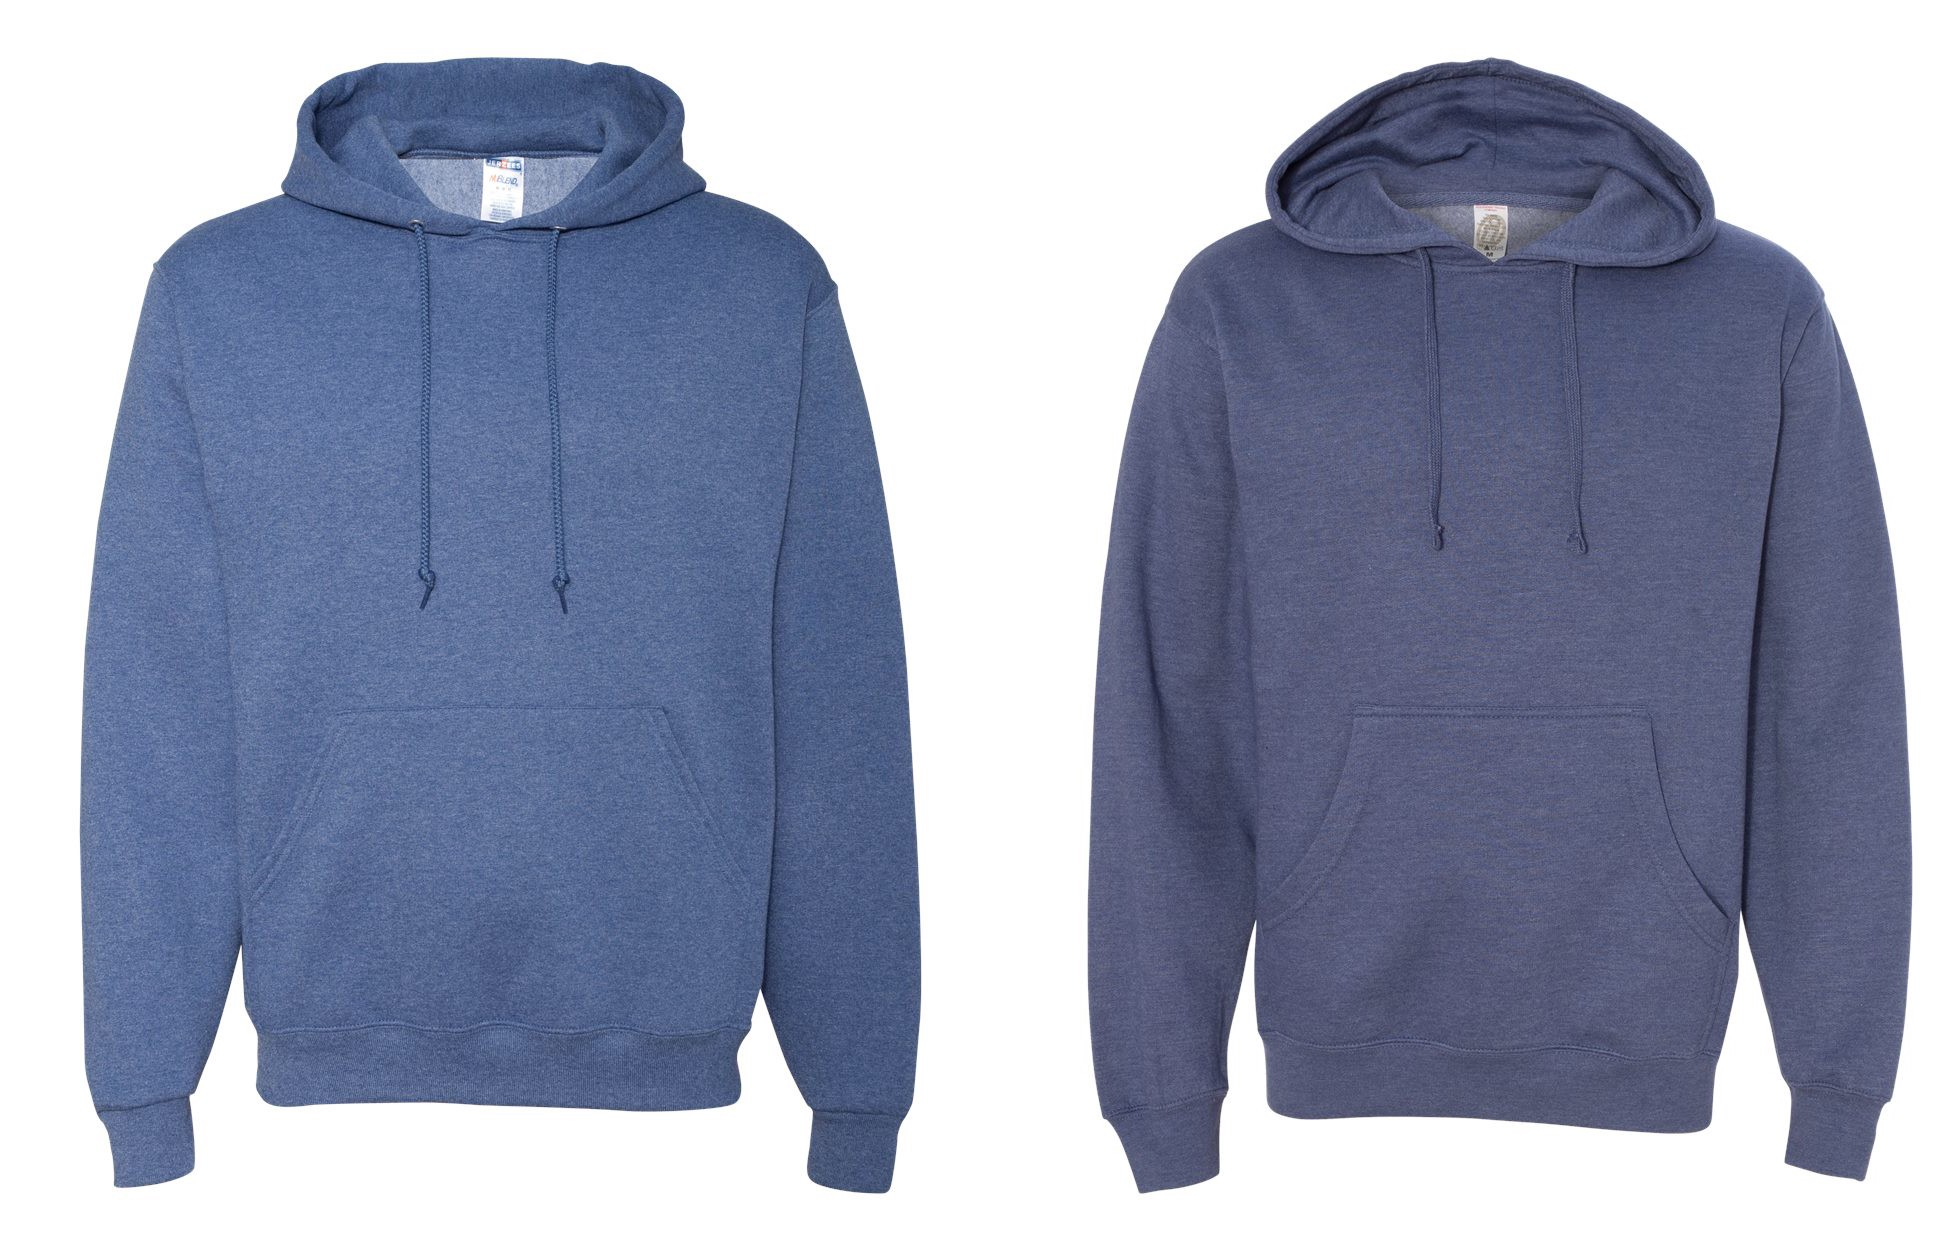 the best fast color cheaper The Best 5 Blank Hoodies to Print On : Reviewed - Christian ...